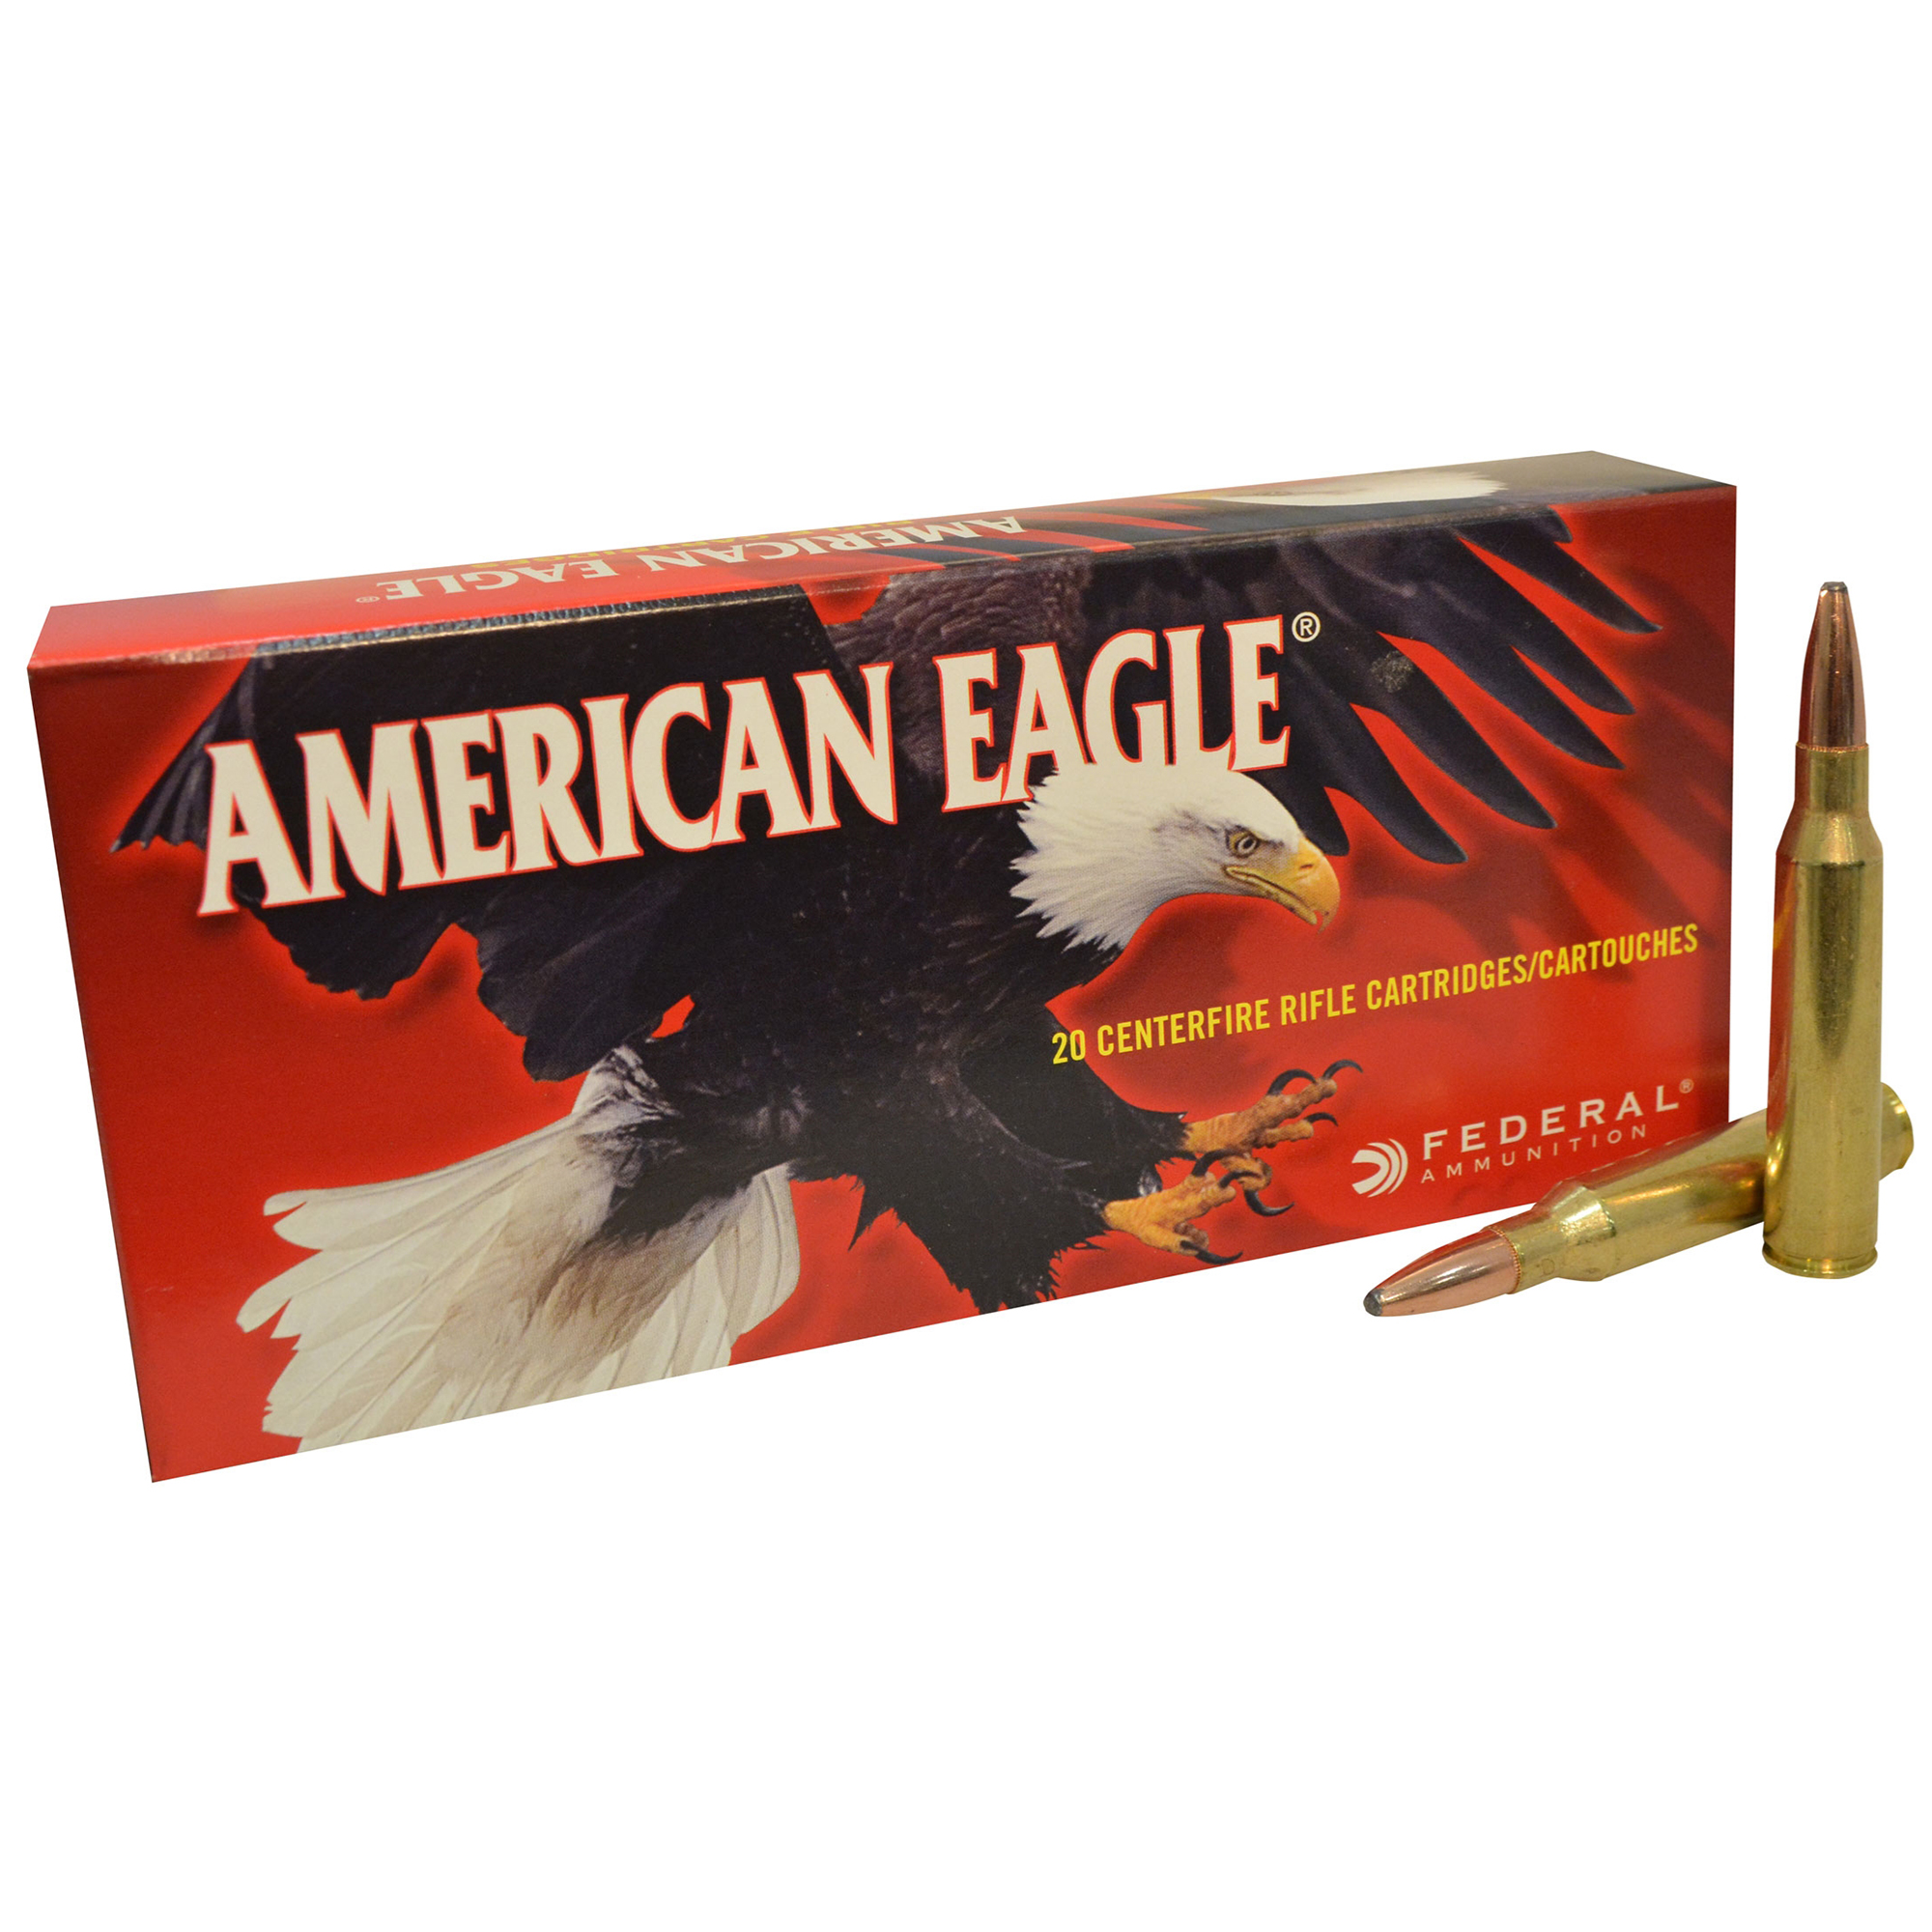 American Eagle Rifle Ammunition, .338 Lapua, 250-gr, Soft Point